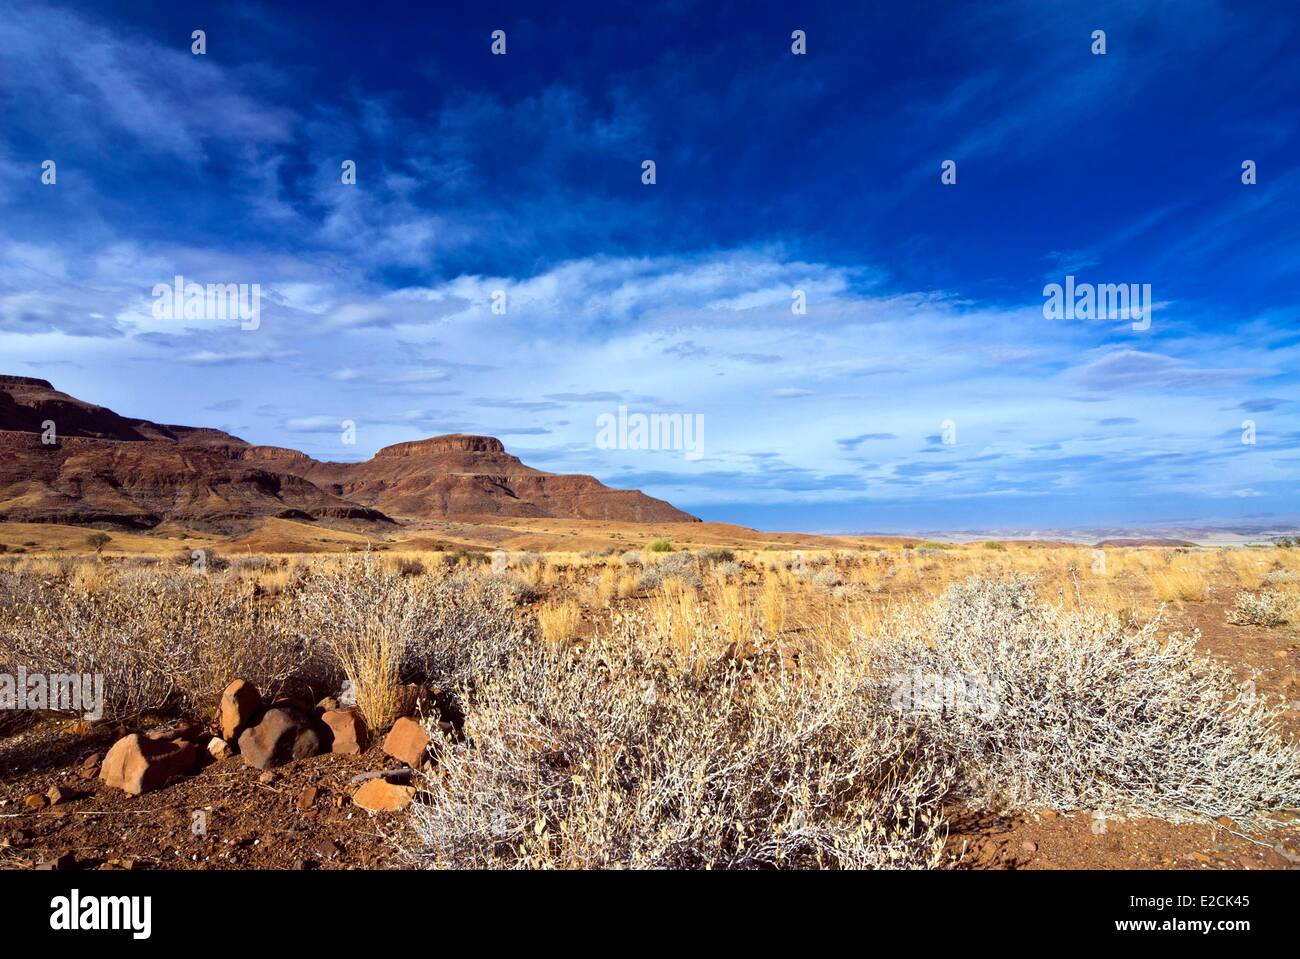 Namibia, Kunene region, Damaraland, Torra Conservancy, Huab River Valley area - Stock Image